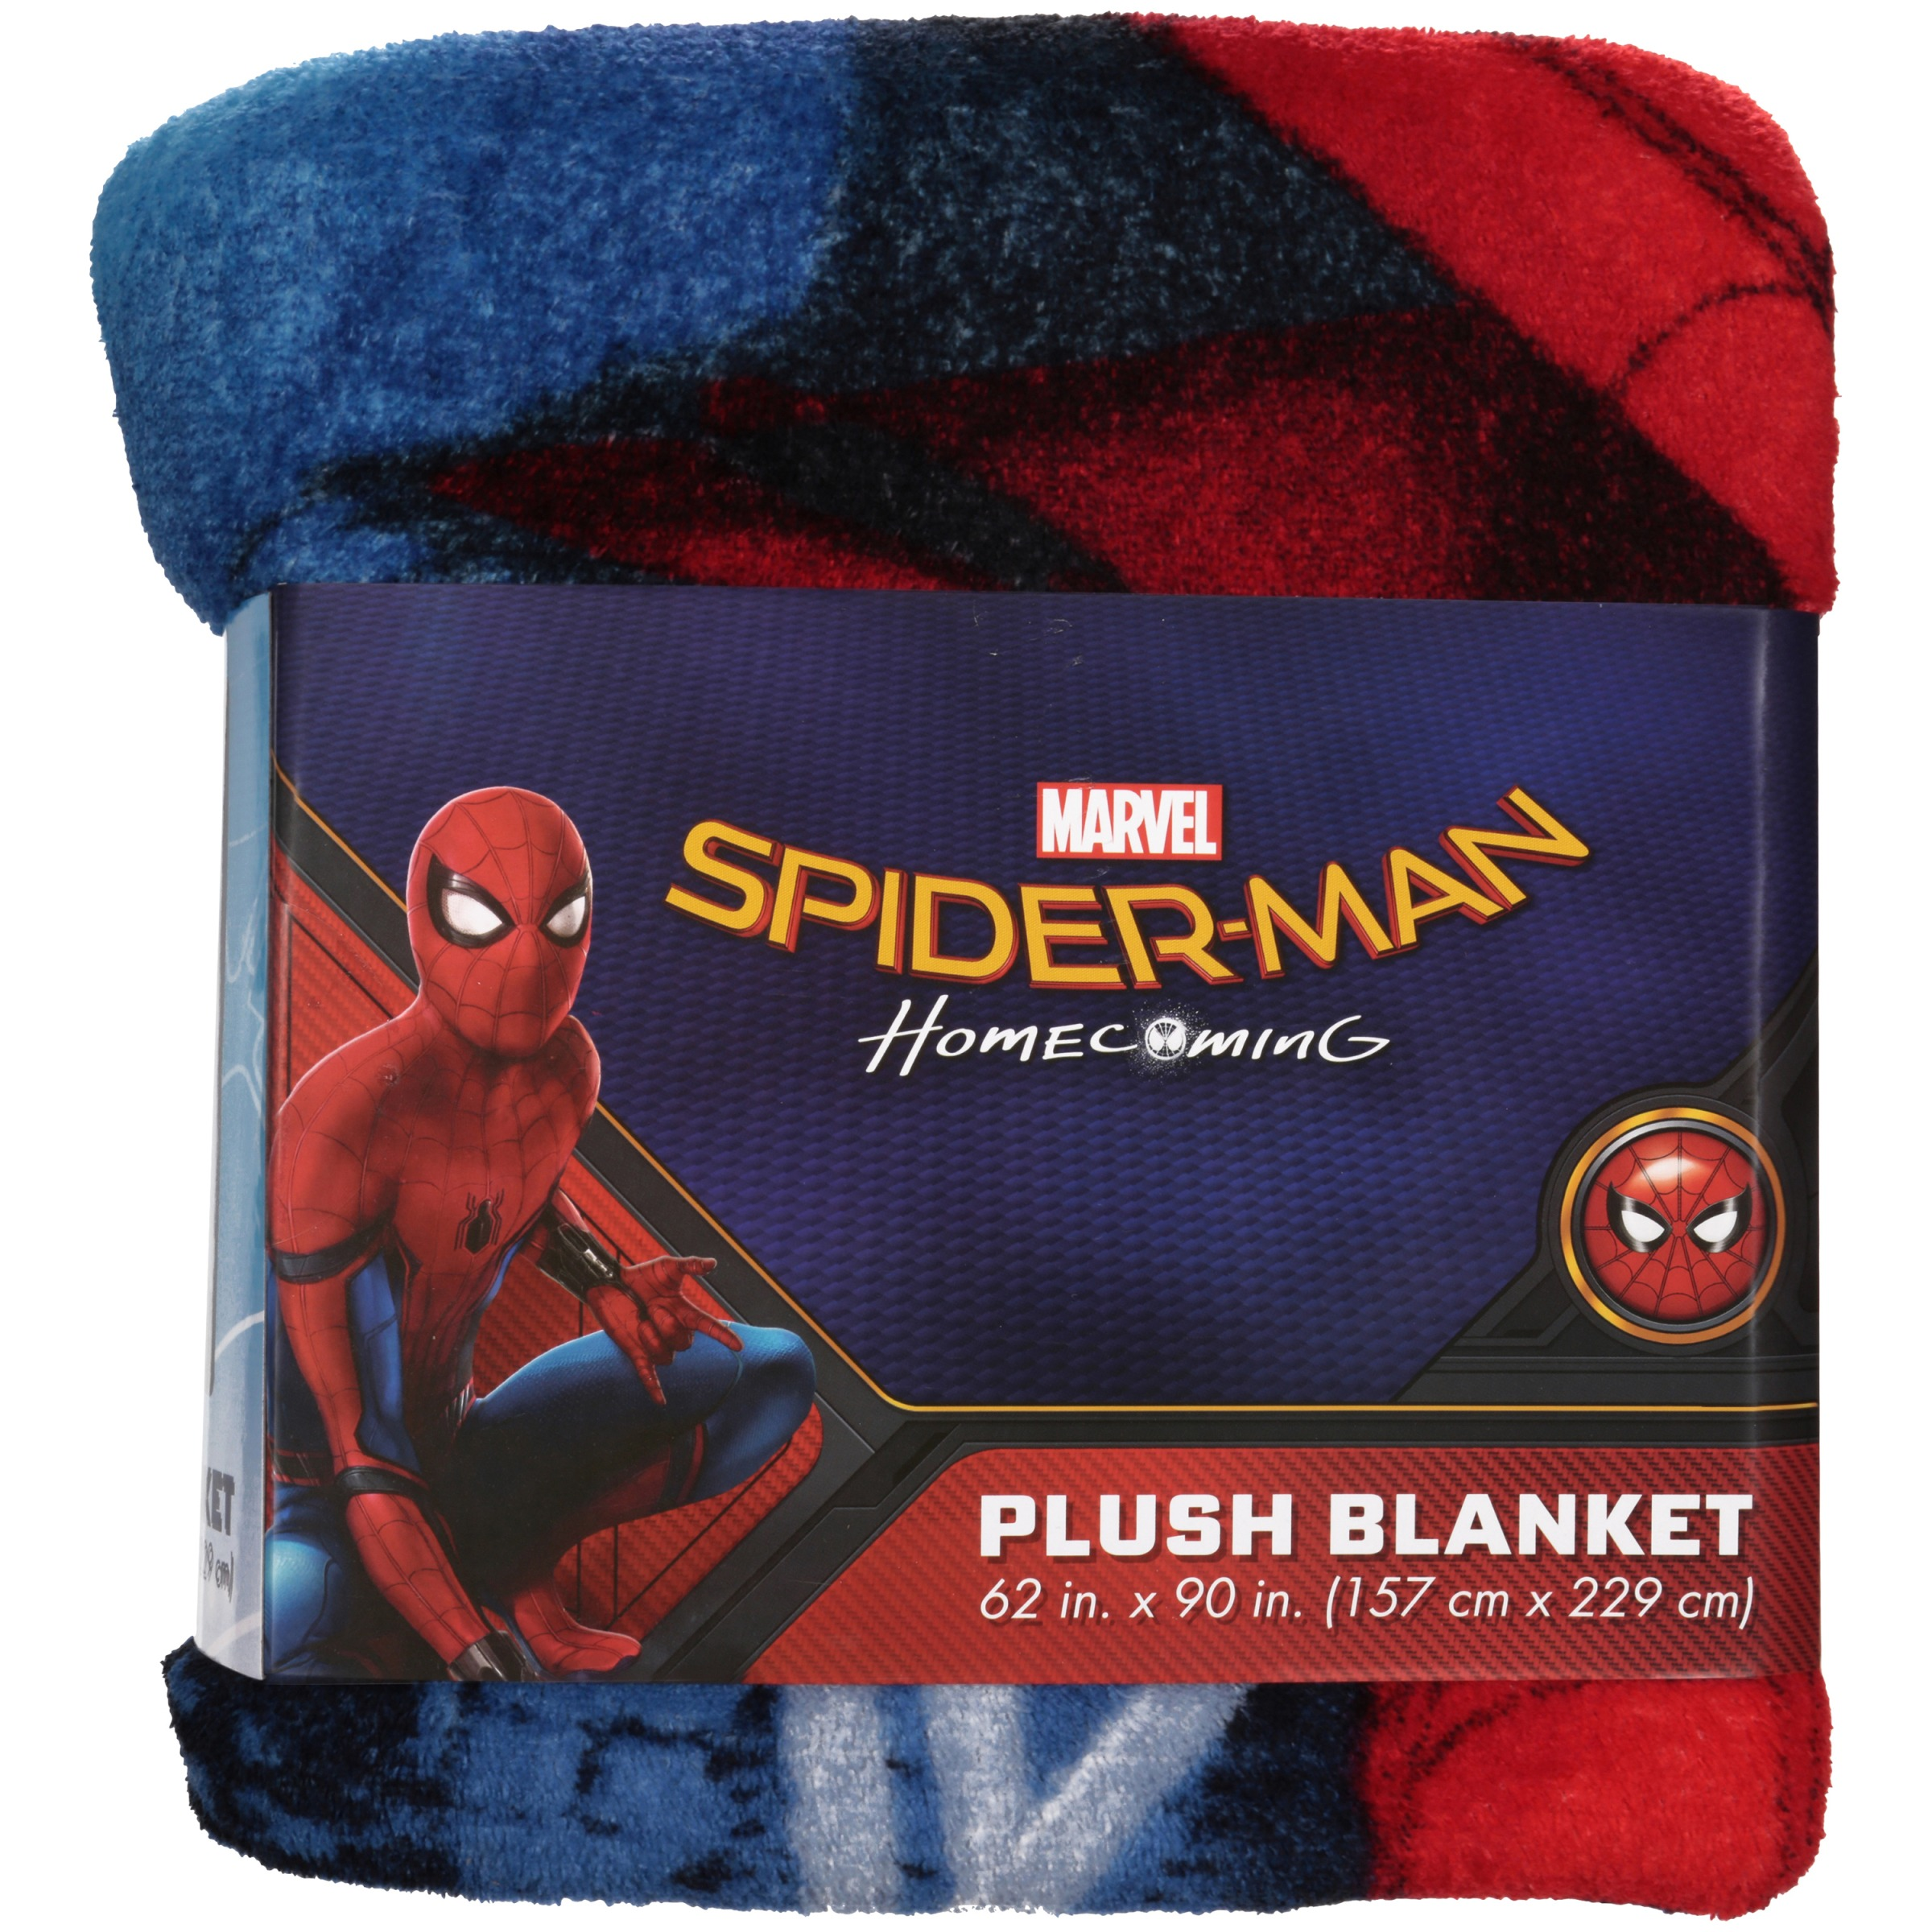 Marvel C Spiderman 62 X 90 Plush Blanket Kid S Bedding Walmart Com